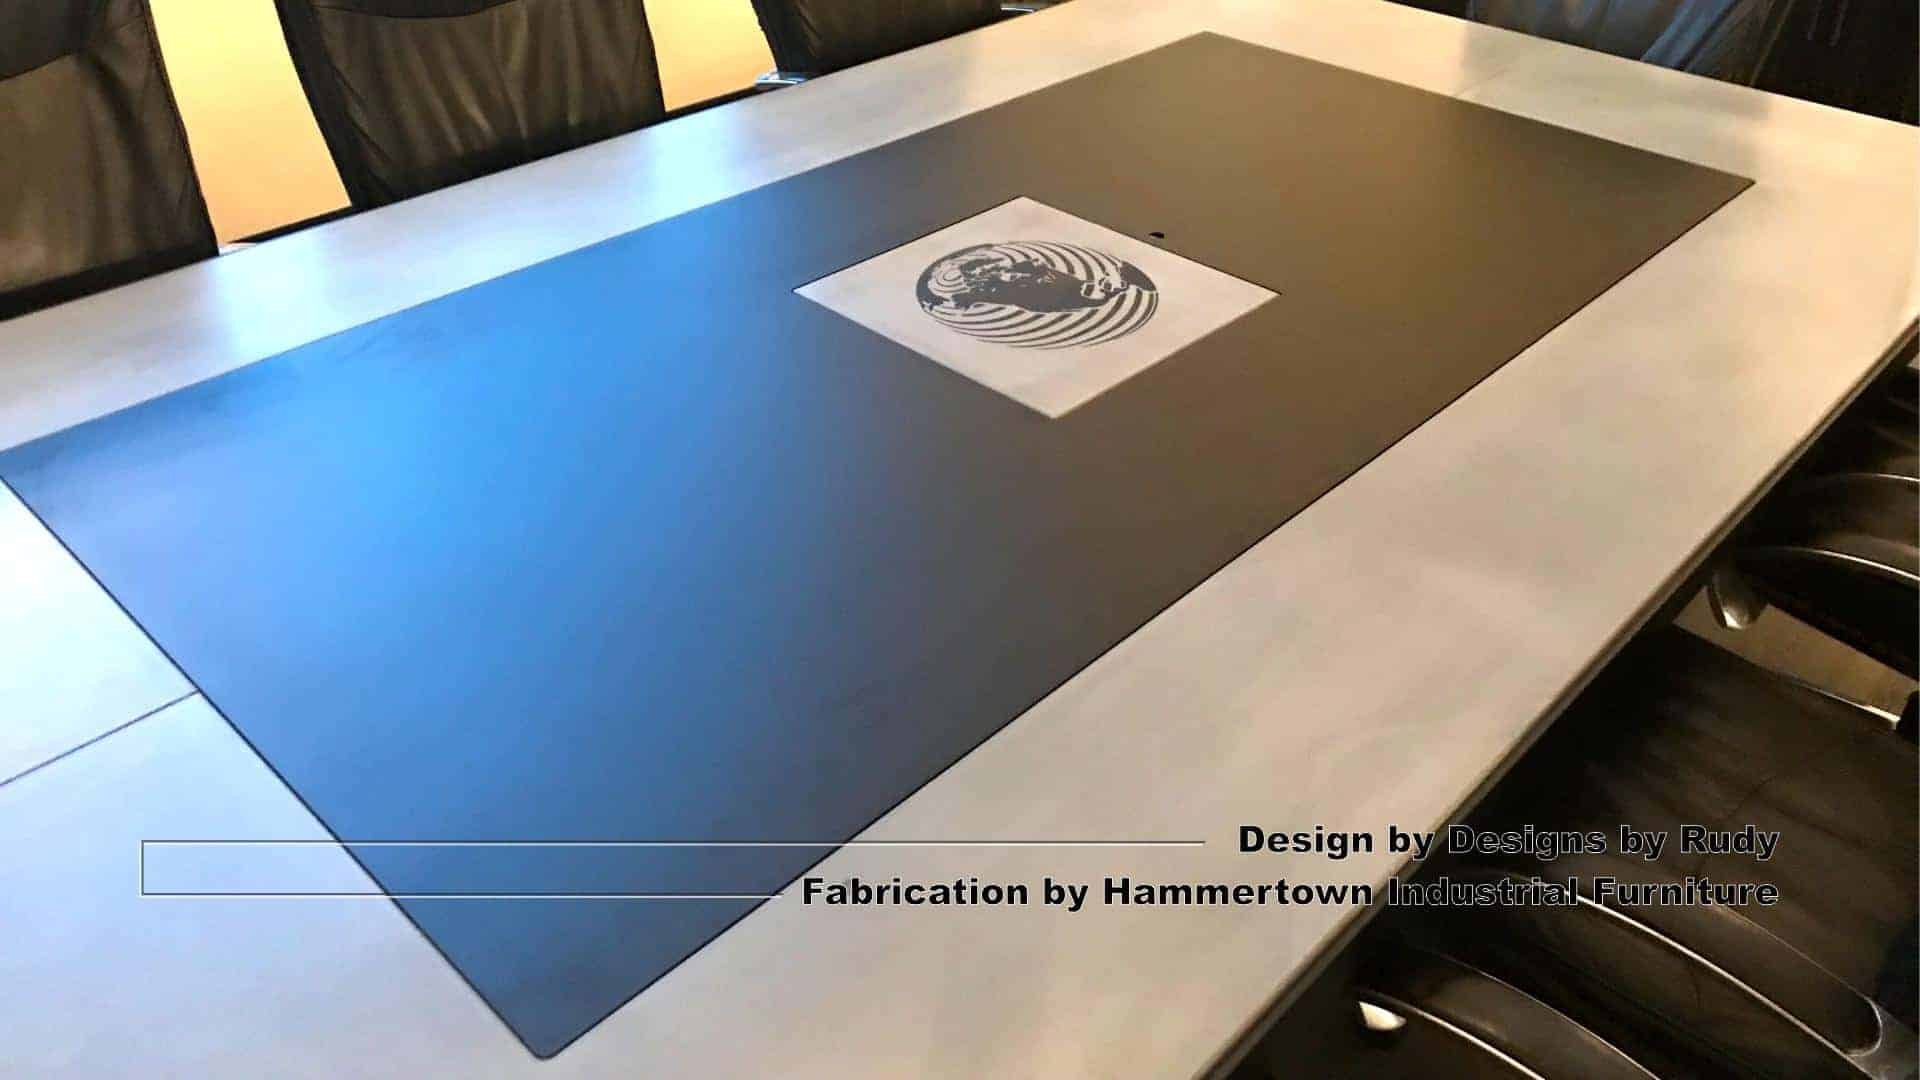 8 Concrete and steel boardroom table for NAC, Designs by Rudy, Hammertown Industrial Furniture, angle view